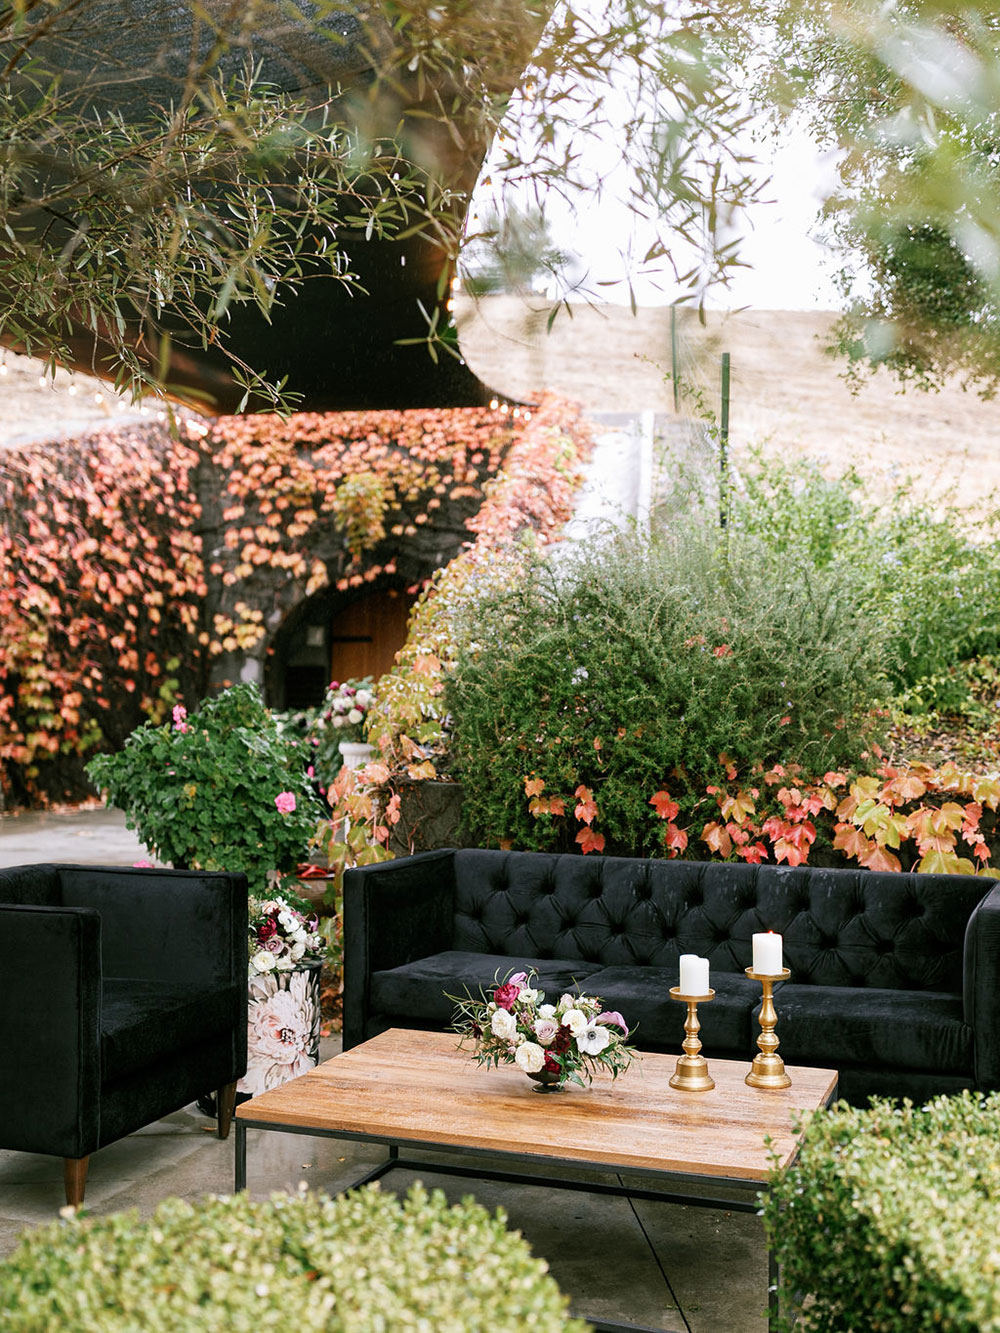 The wedding lounge was a refined one, with black furniture, lush florals and greenery and candles